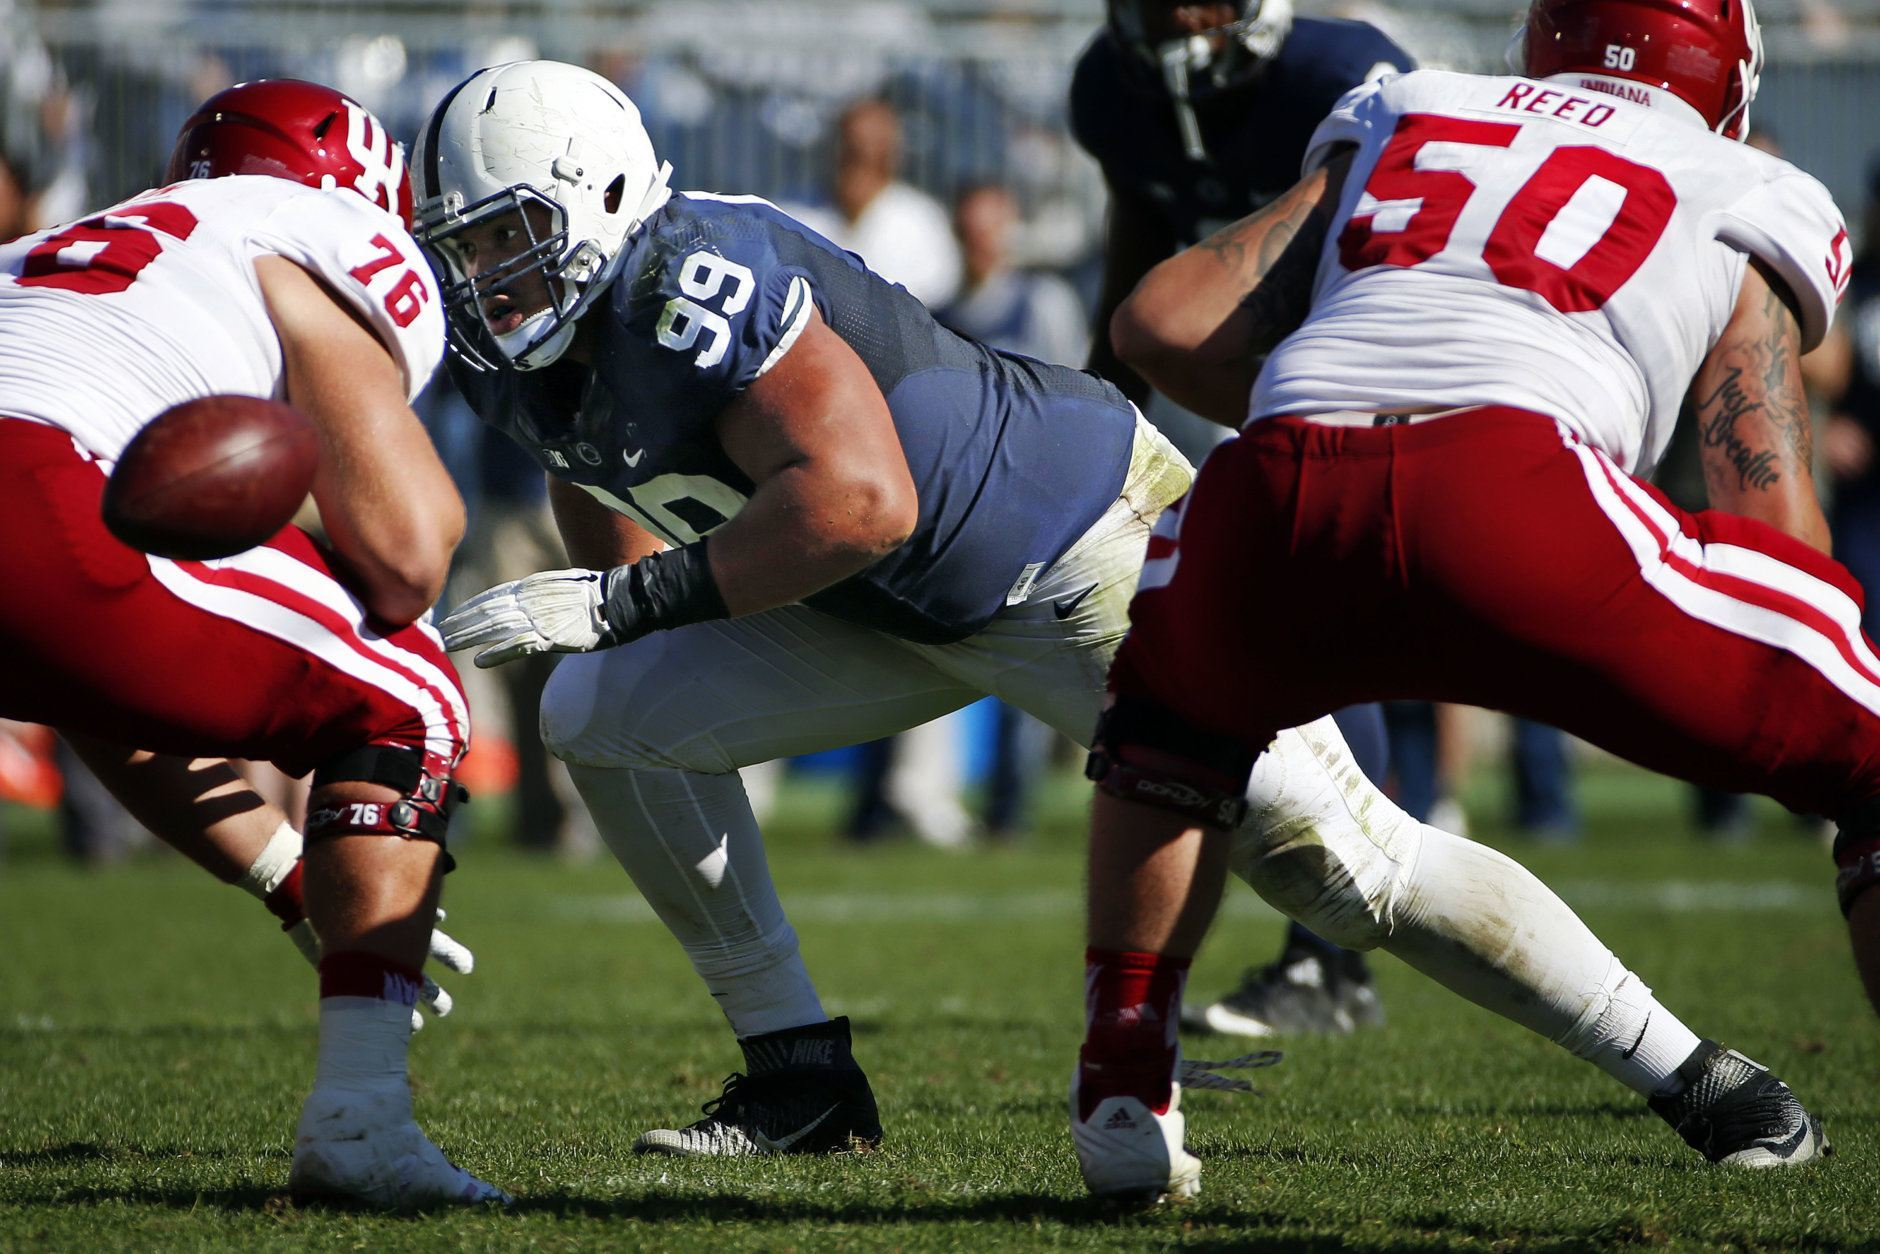 Penn State defensive tackle Austin Johnson (99) comes off the ball against Indiana offensive lineman Wes Martin (76)  during the second half of an NCAA college football game against Indiana in State College, Pa., Saturday, Oct. 10, 2015. Penn State won 29-7. (AP Photo/Gene J. Puskar)